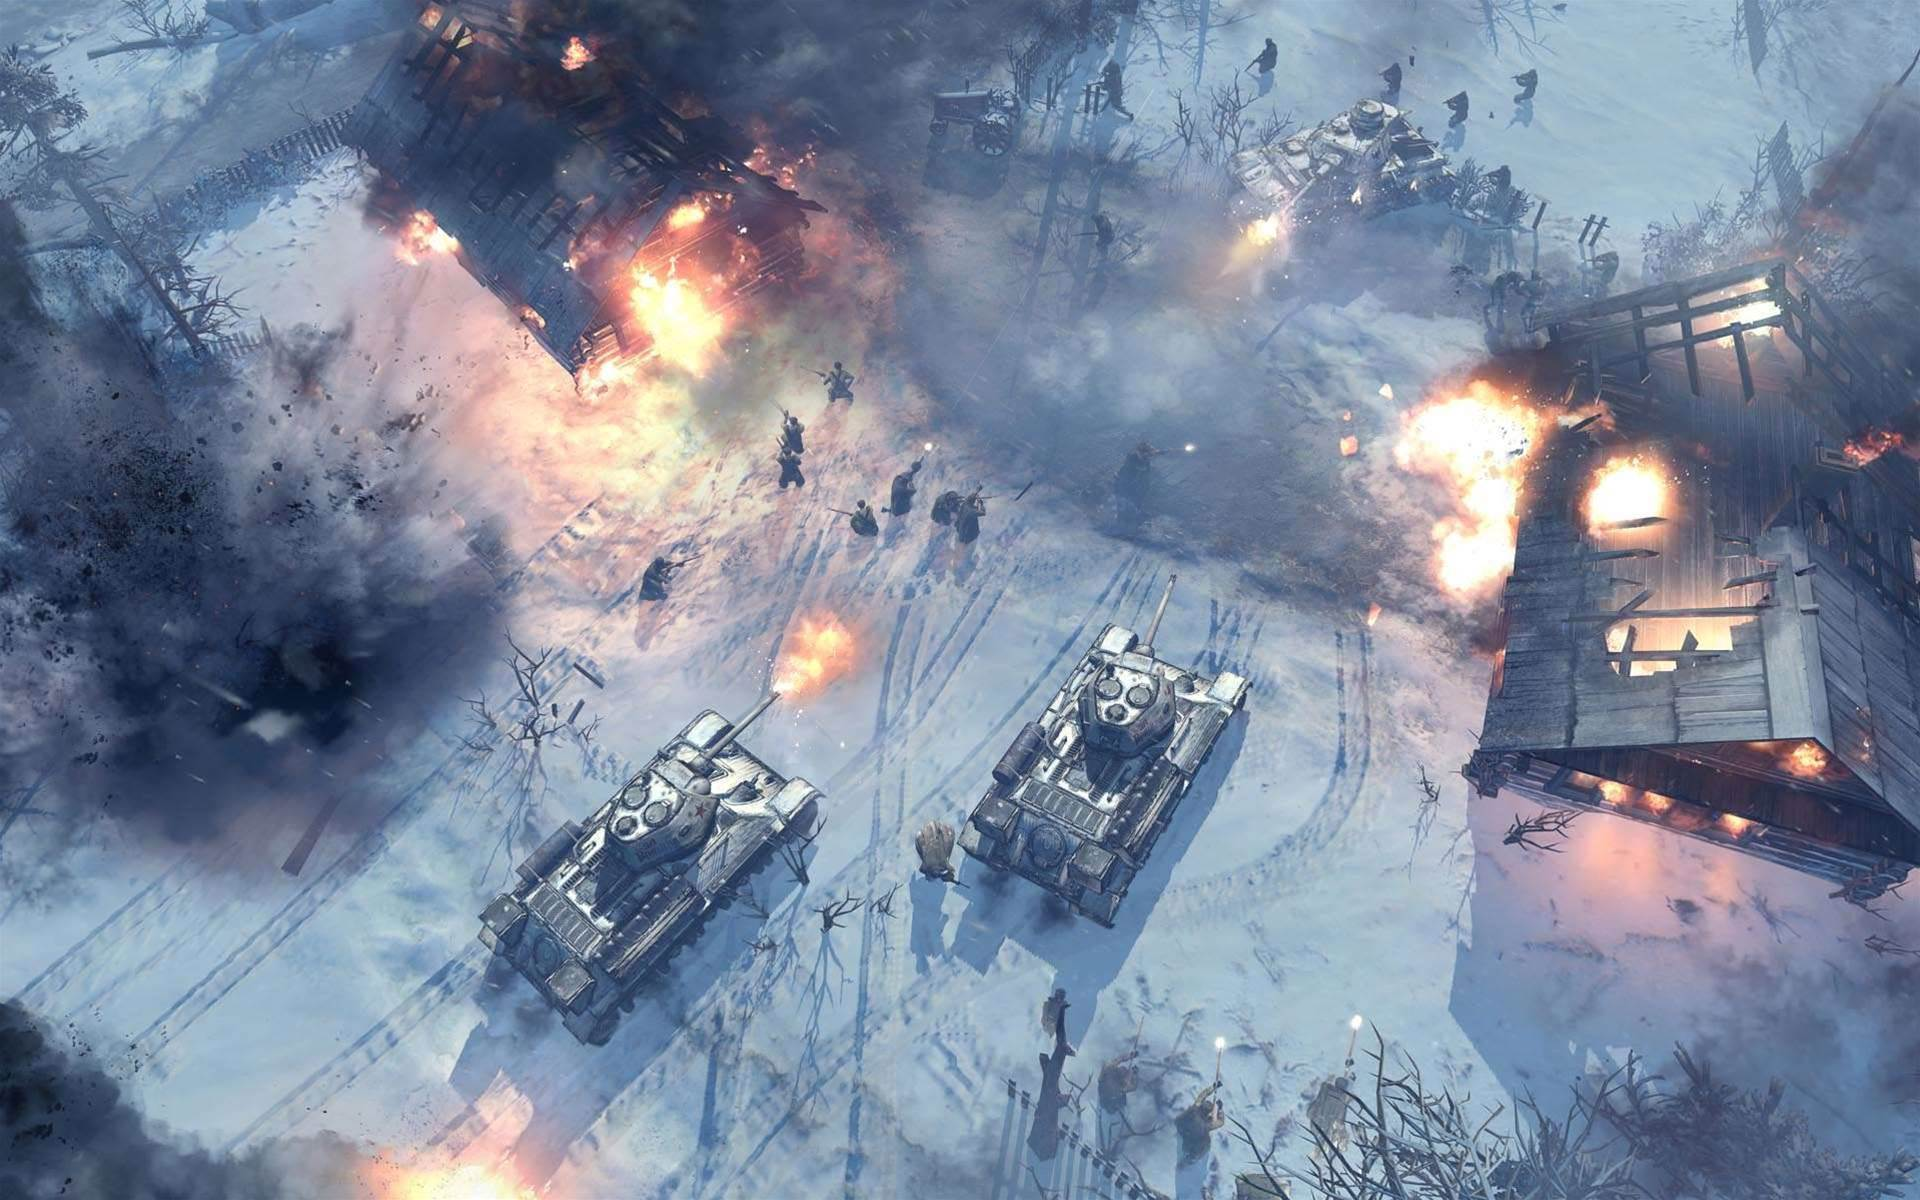 First look at Company of Heroes 2!